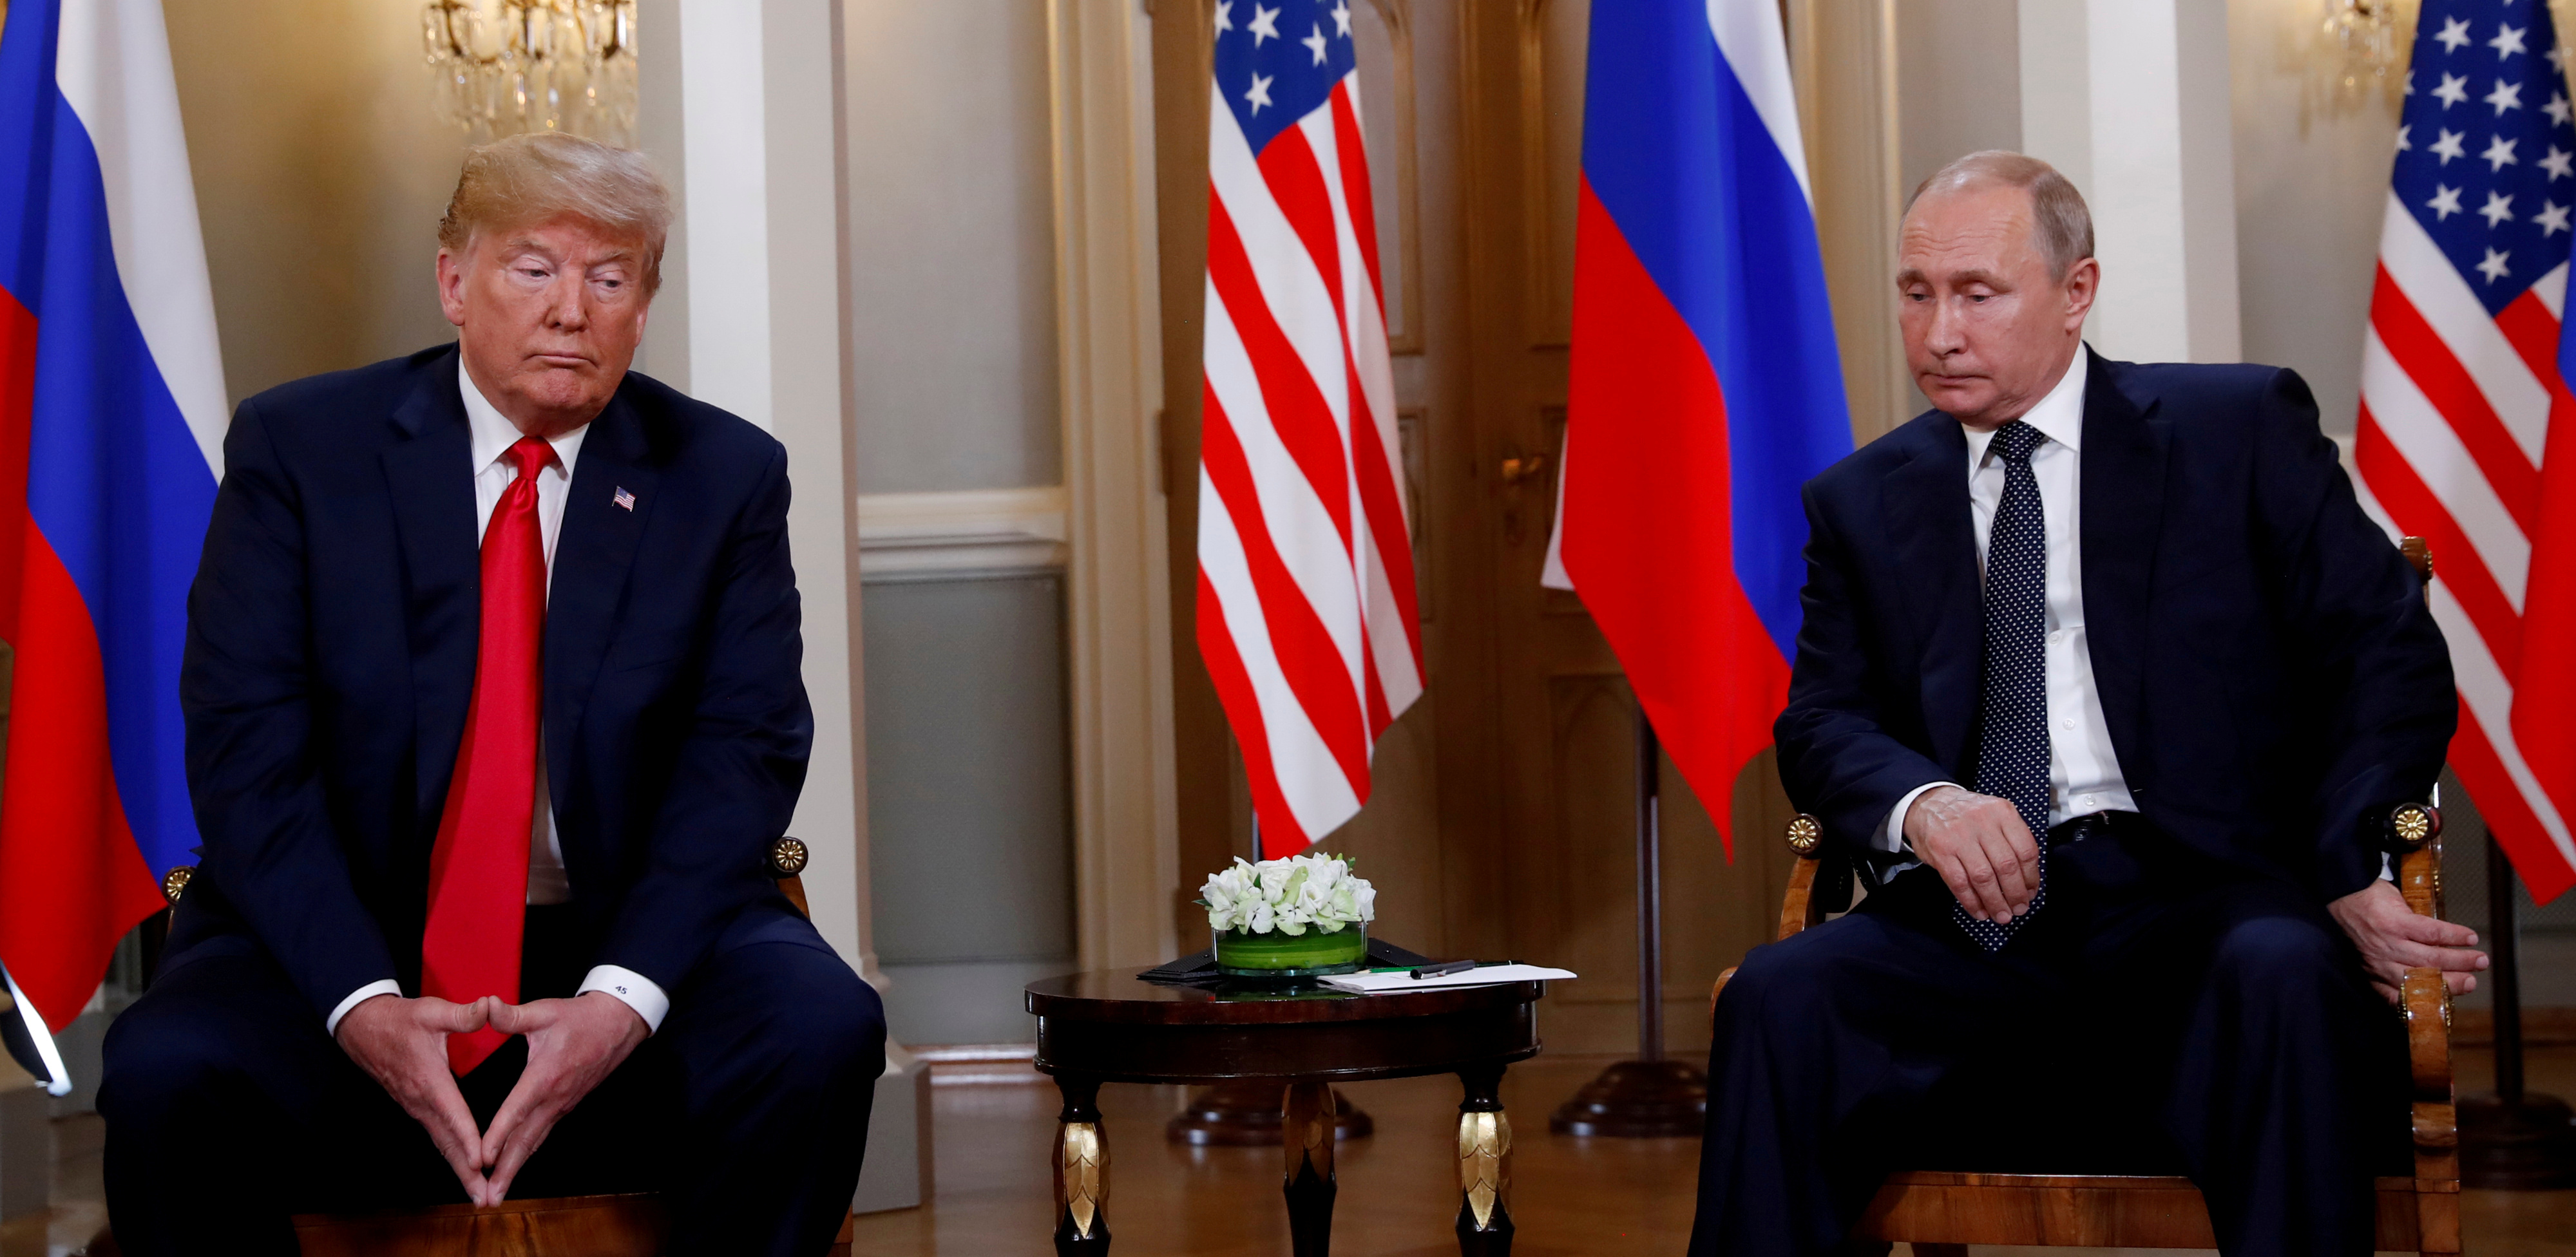 FILE PHOTO: U.S. President Donald Trump meets Russian President Vladimir Putin in Helsinki, Finland, July 16, 2018. REUTERS/Kevin Lamarque/File Photo